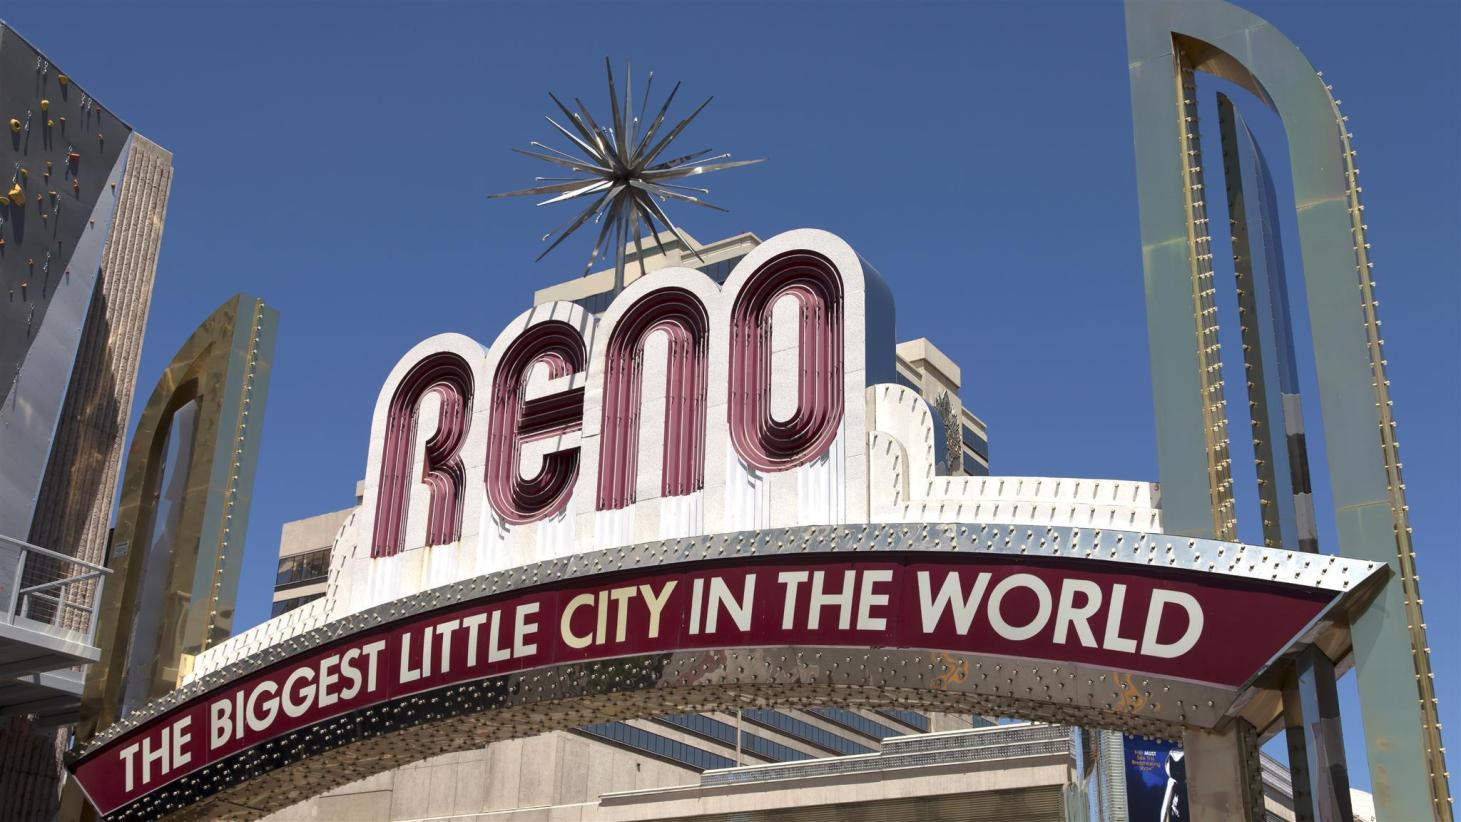 10 Best Reno (NV) Hotels: HD Photos + Reviews of Hotels in